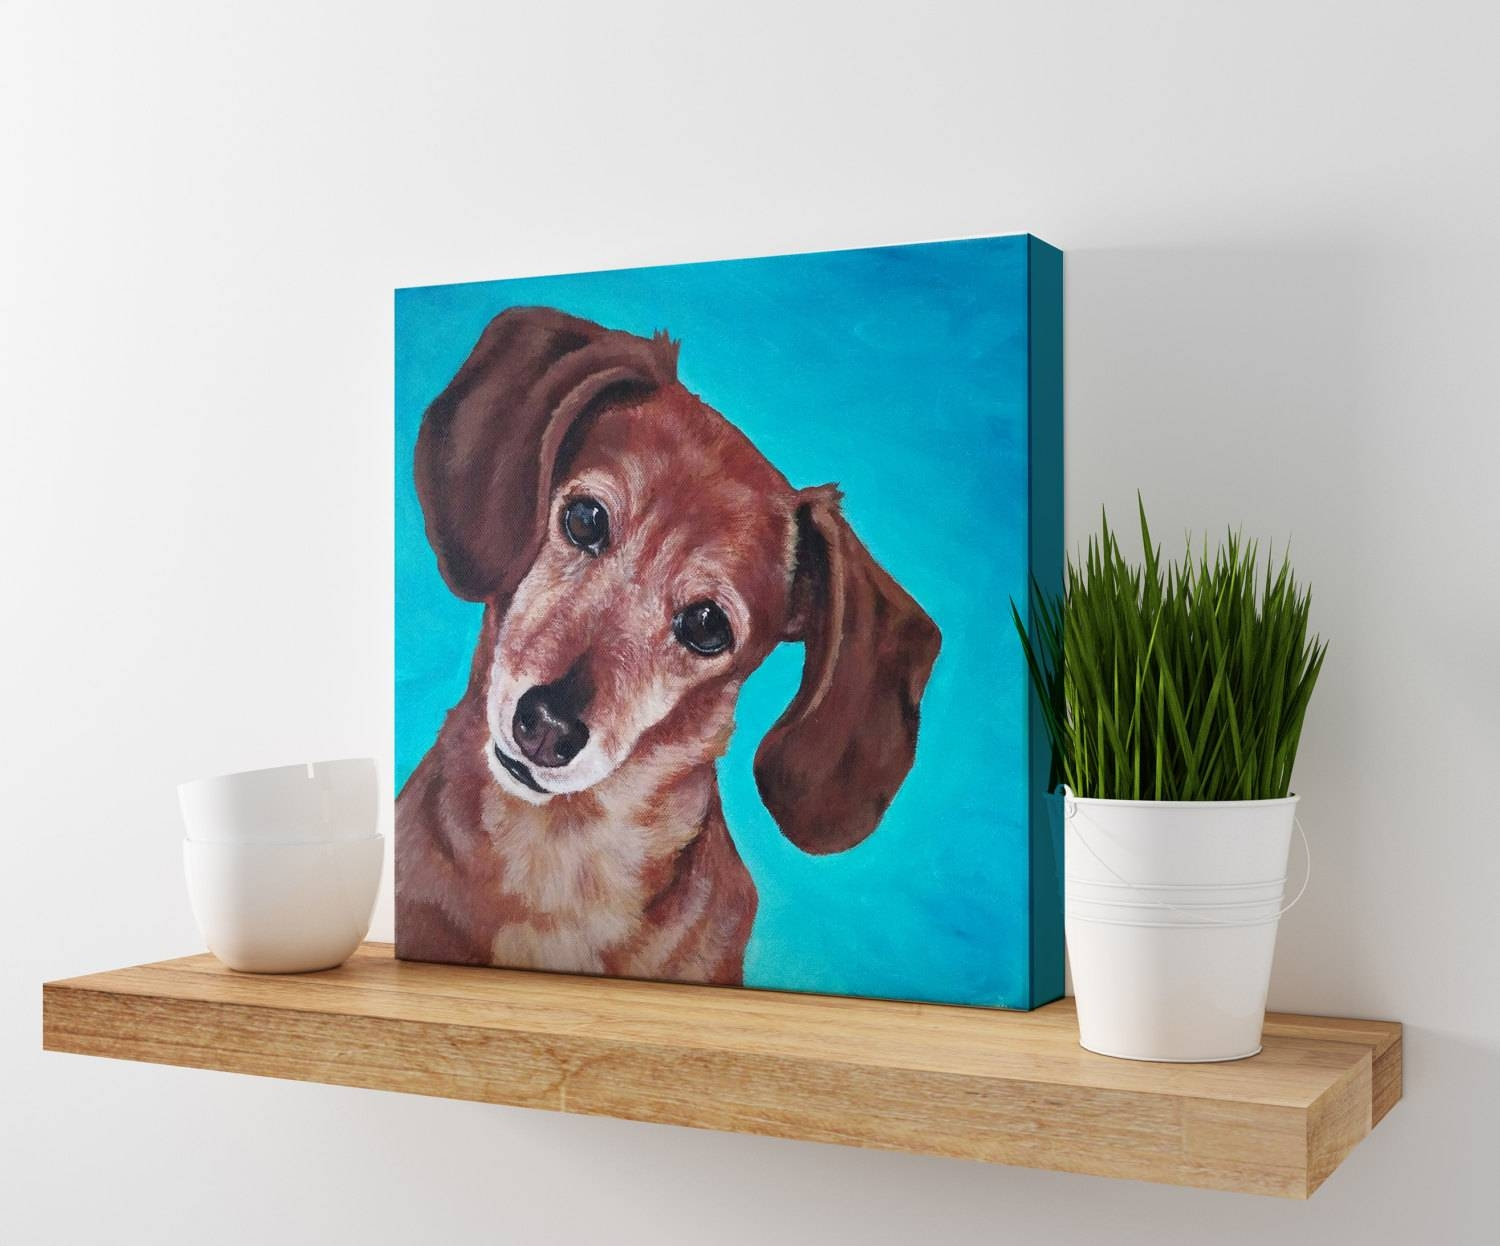 Dachshund Print Dog Art Weiner Dog Art Doxie Painting For Most Popular Dachshund Wall Art (View 11 of 22)